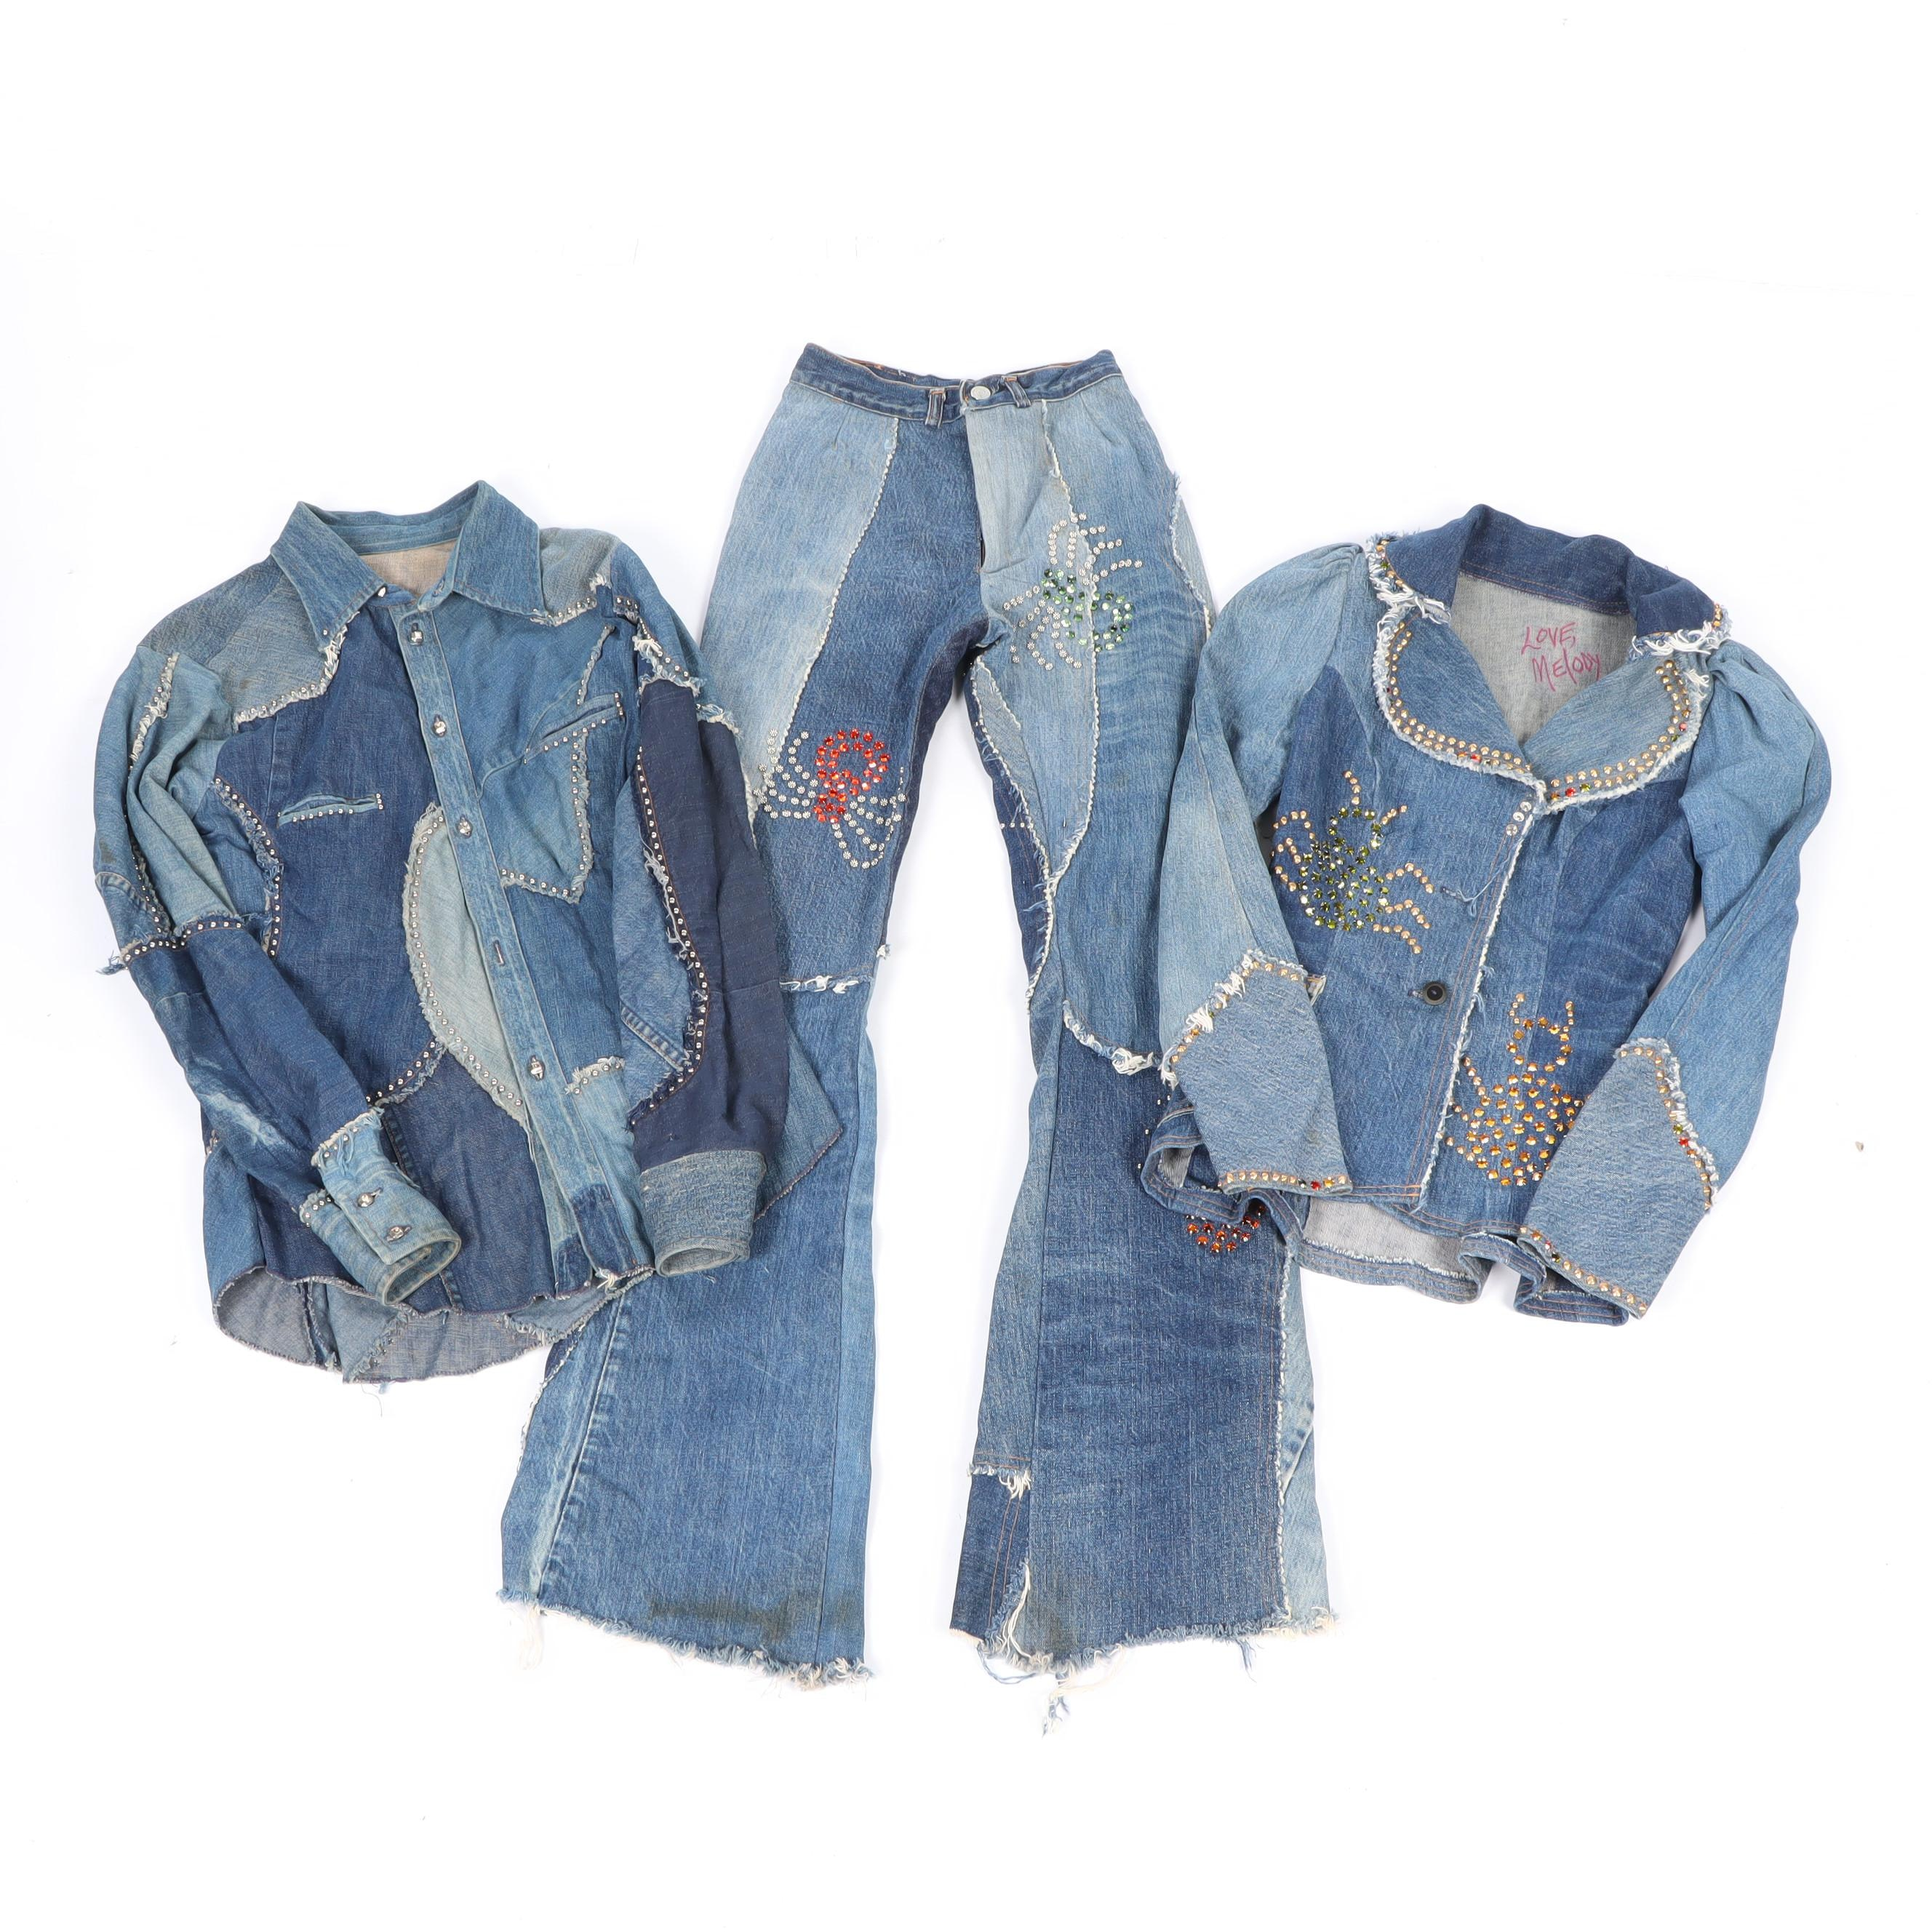 Love Melody Embellished Custom Patchwork Studded Denim Jackets and Jeans, 1970s